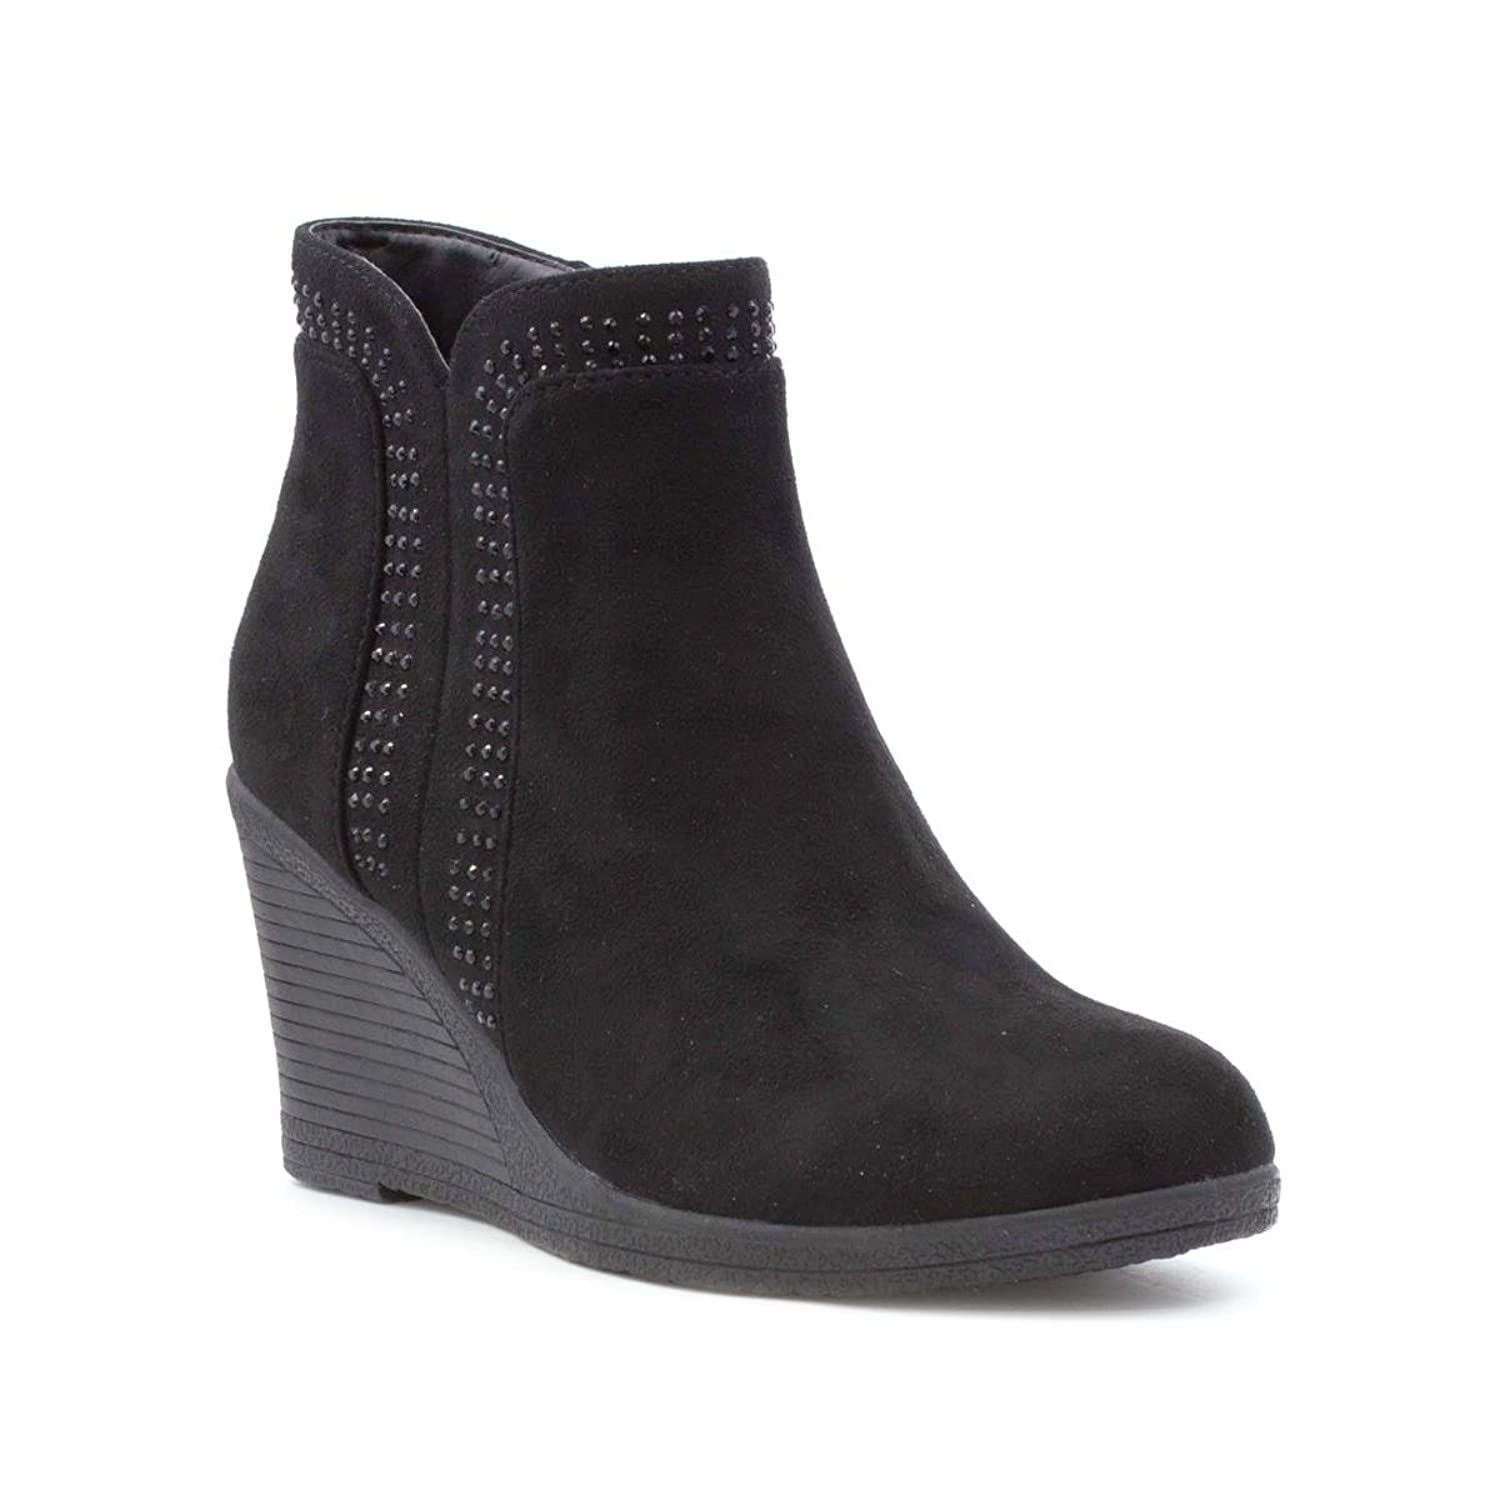 images Lilley Womens Black Buckle Detail Ankle Boot-18640 modern collection